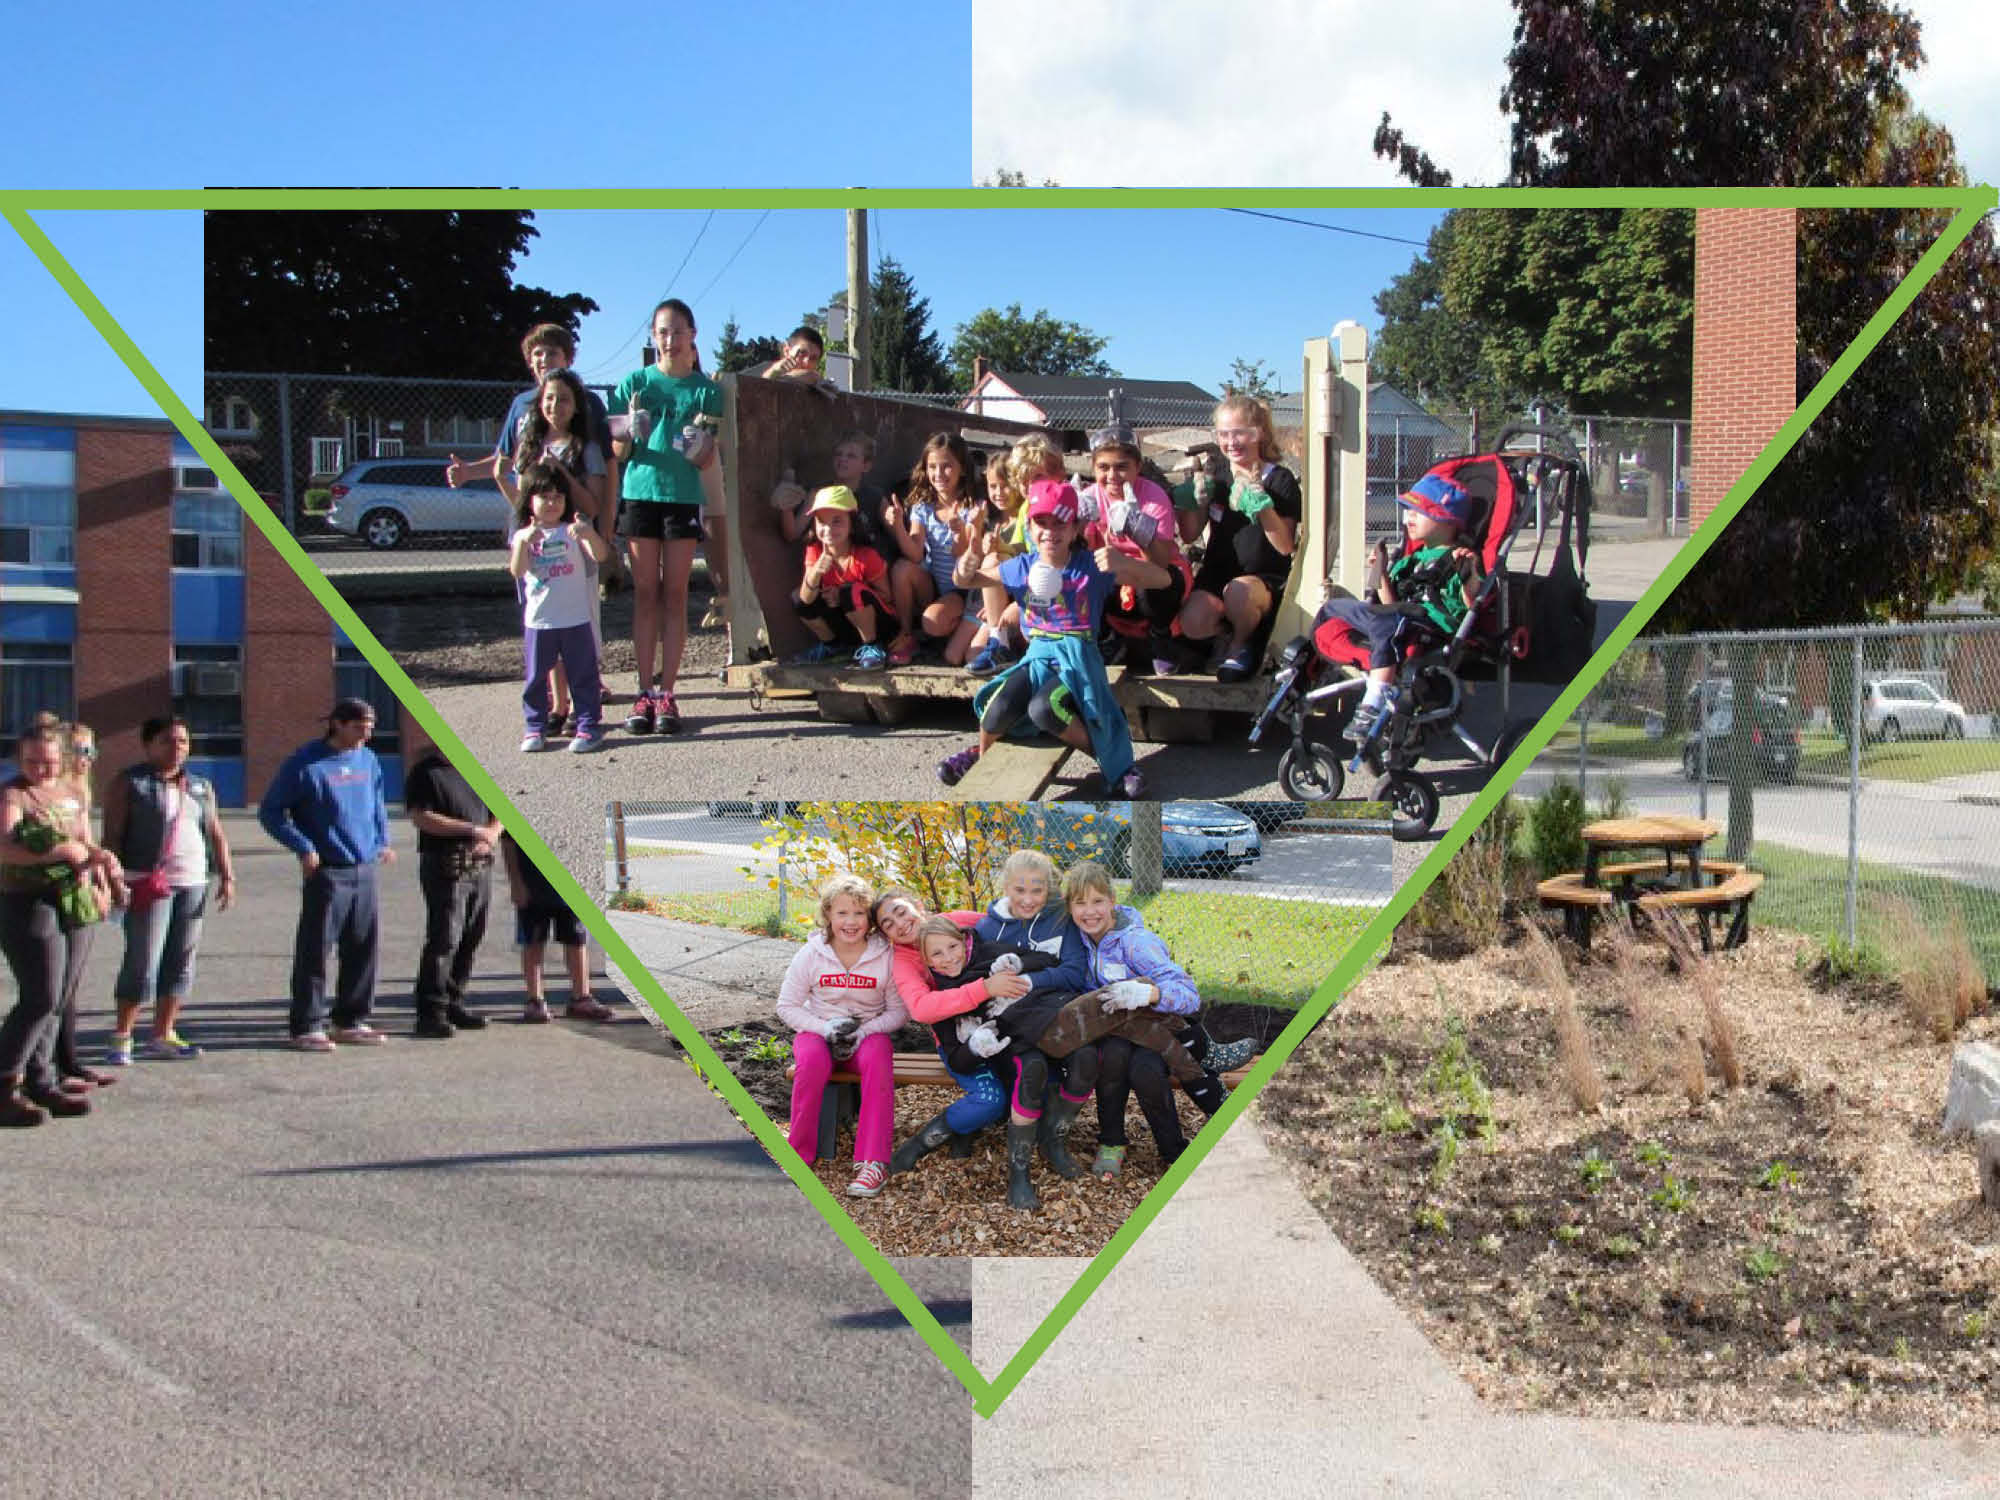 Outdoor learning without pavement